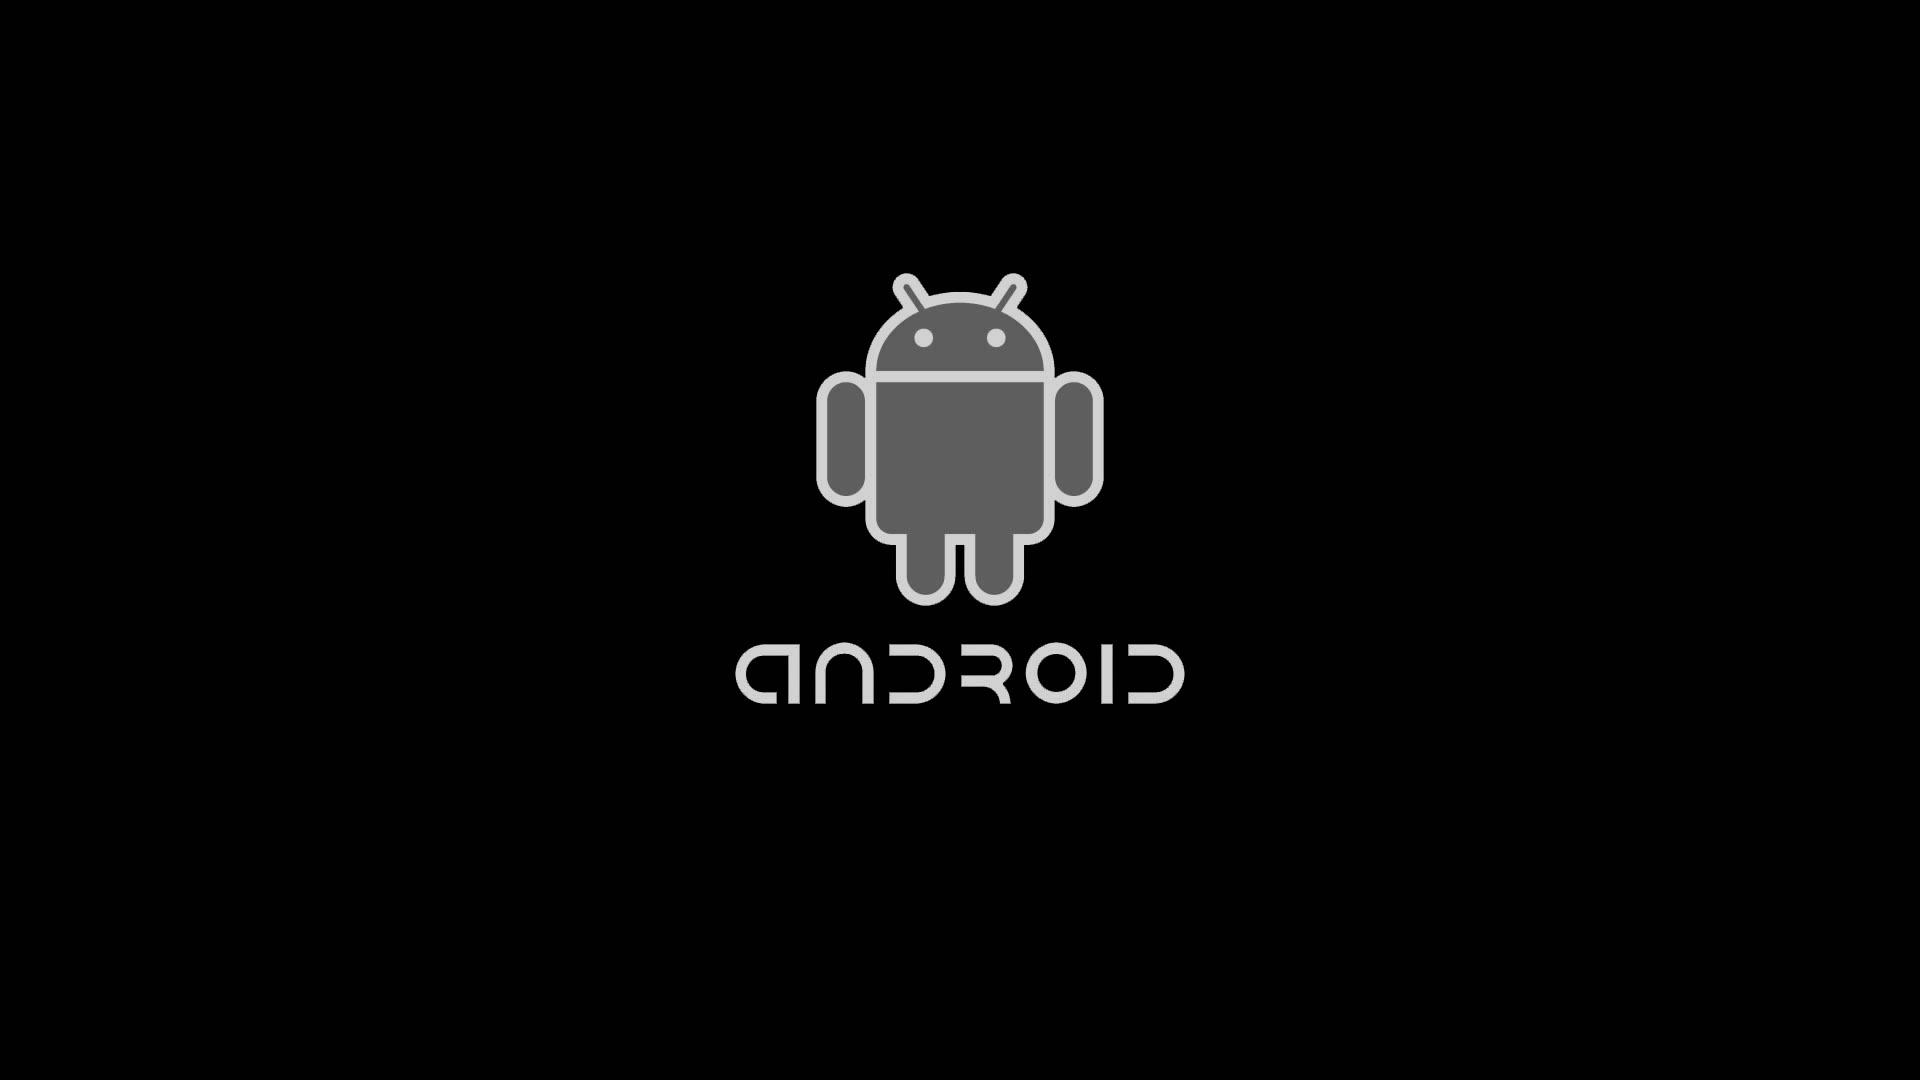 41+] Black HD Wallpapers for Android on WallpaperSafari